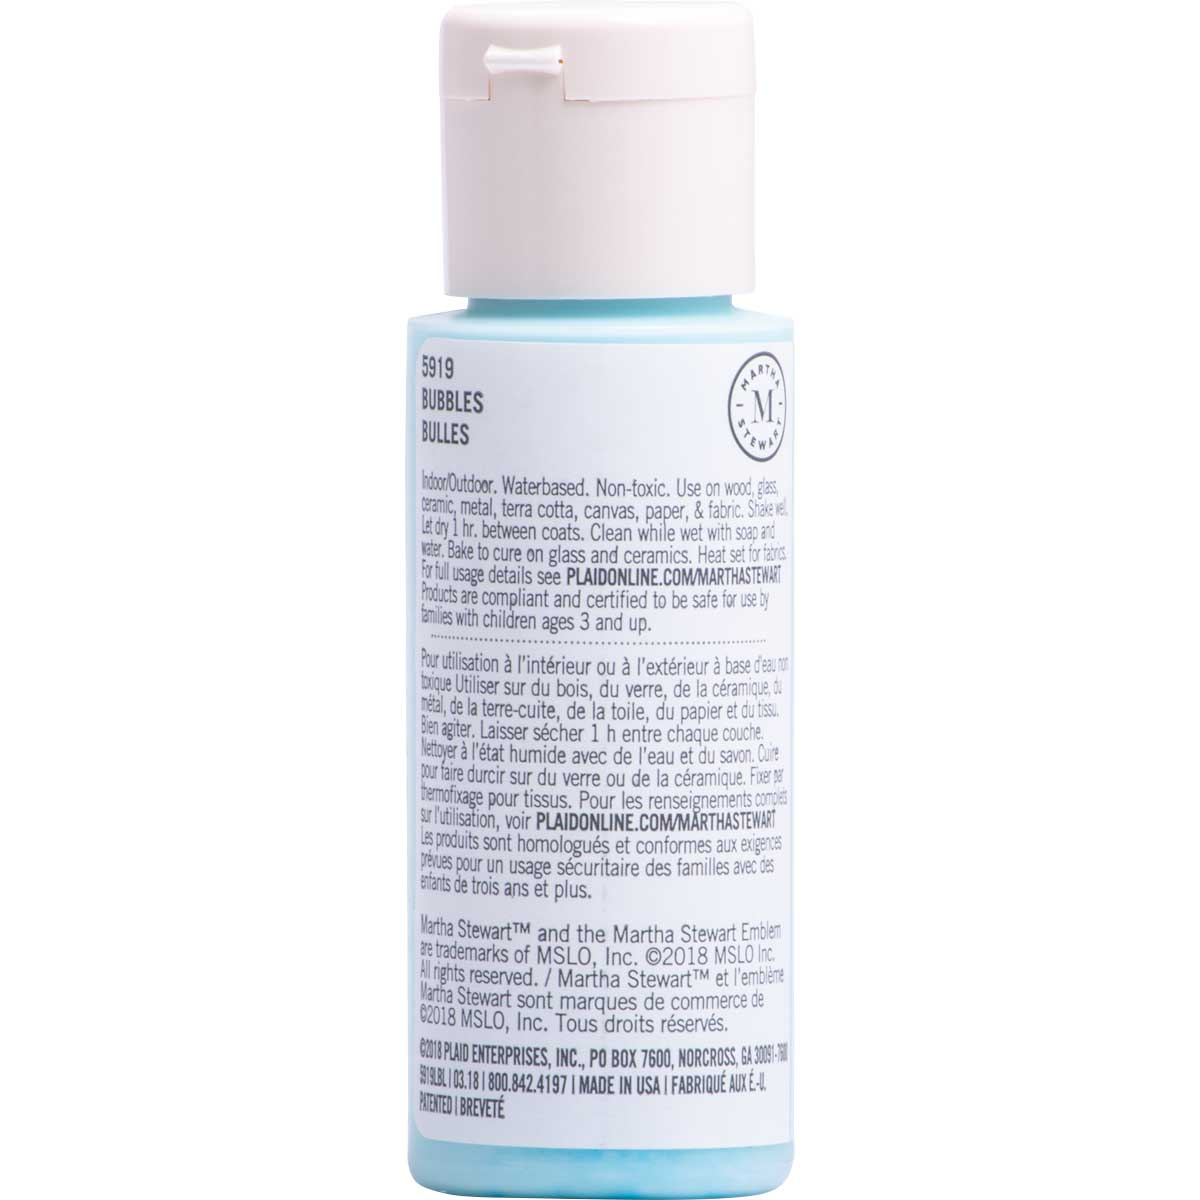 Martha Stewart ® Multi-Surface Satin Acrylic Craft Paint CPSIA - Bubbles, 2 oz. - 5919